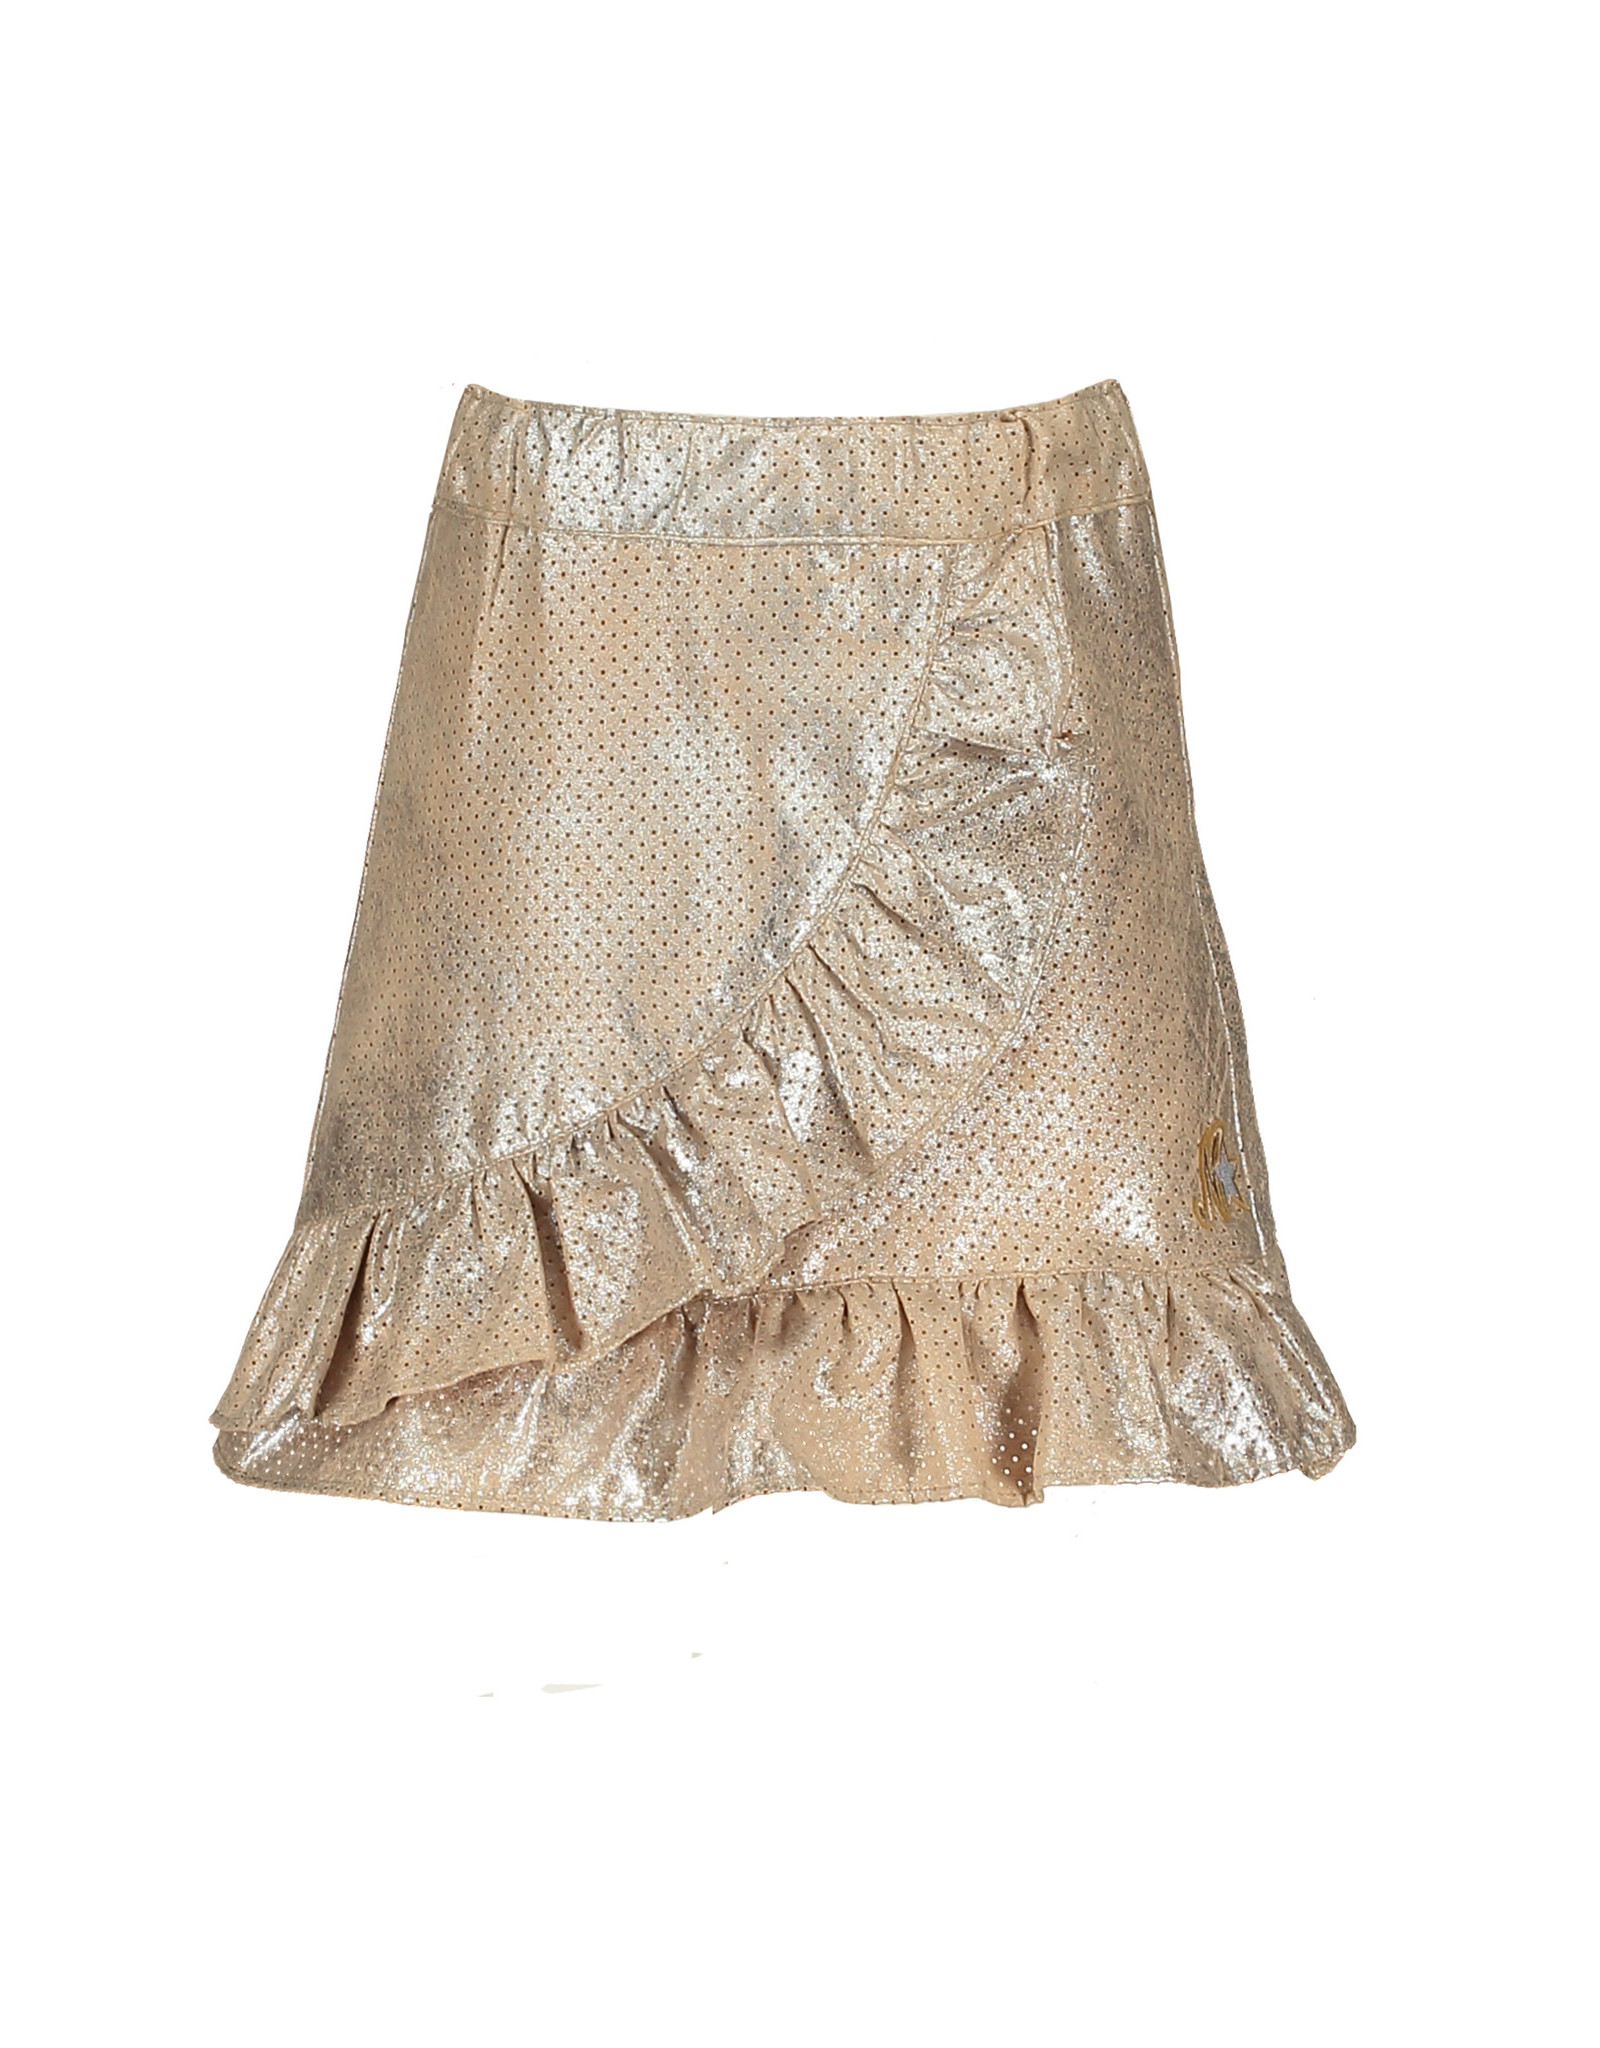 NONO NONO Navis Perforated Suede Skirt with Ruffle